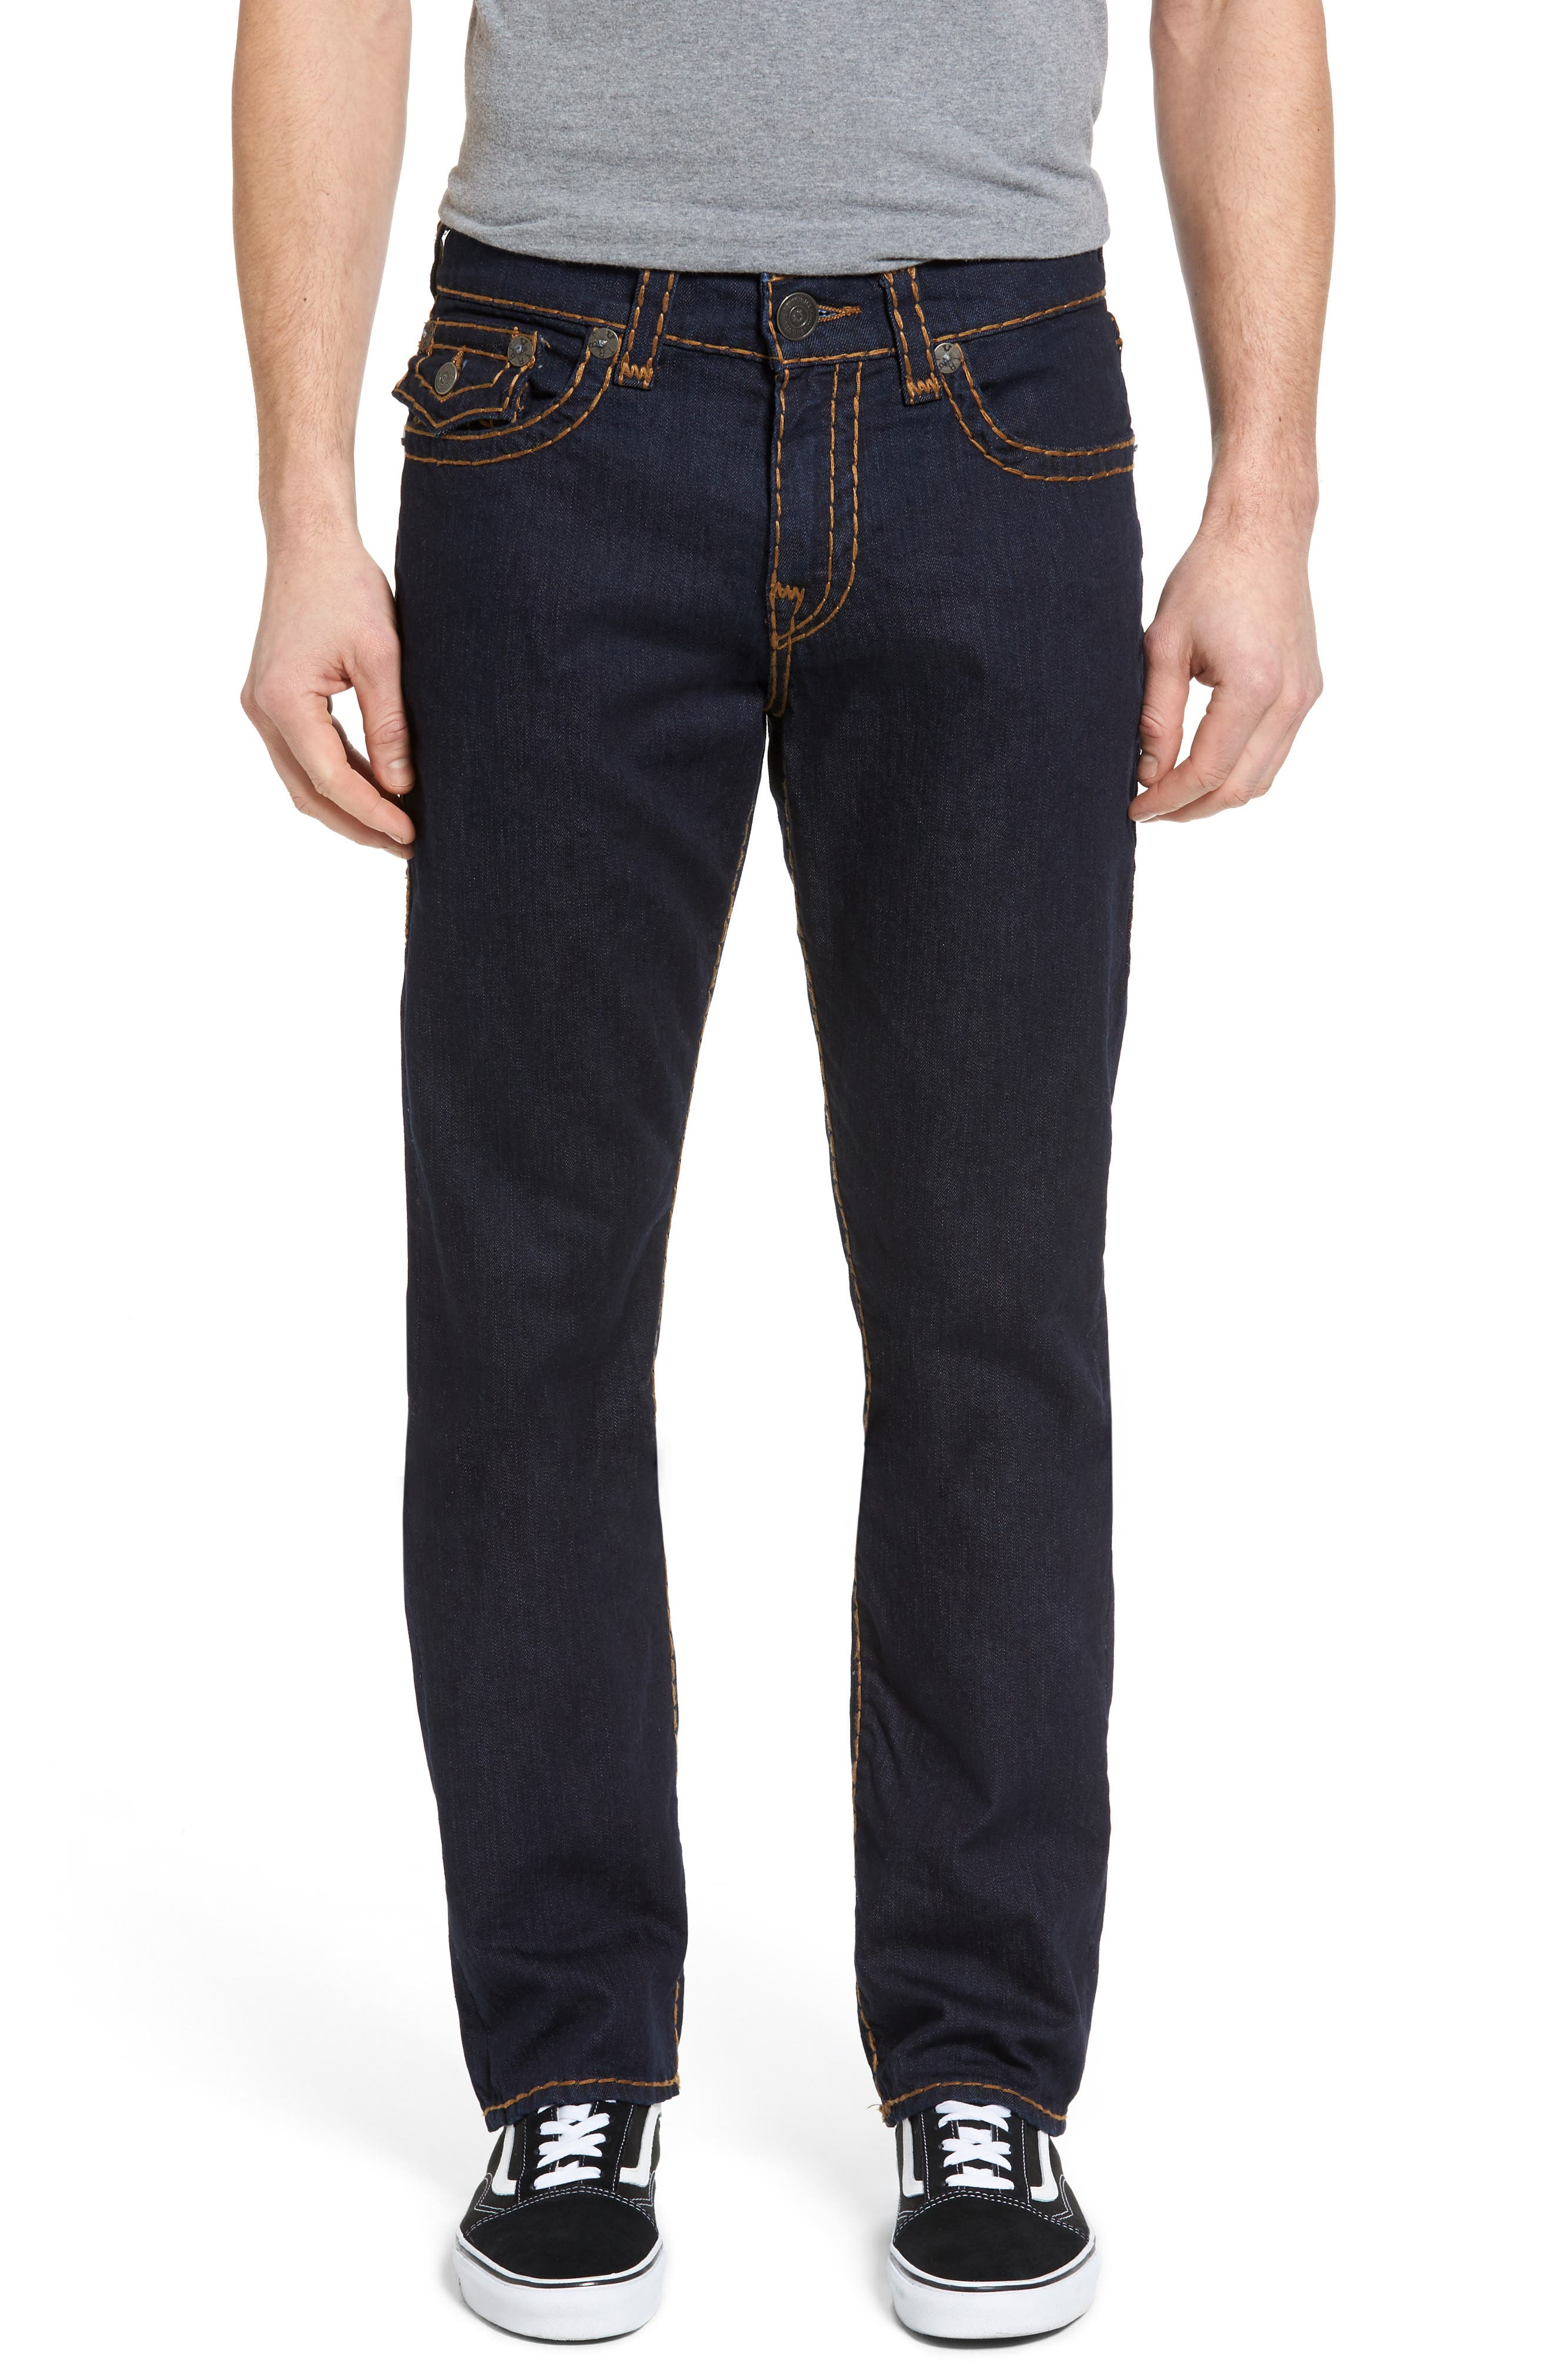 Ricky Relaxed Fit Jeans,                             Main thumbnail 1, color,                             400